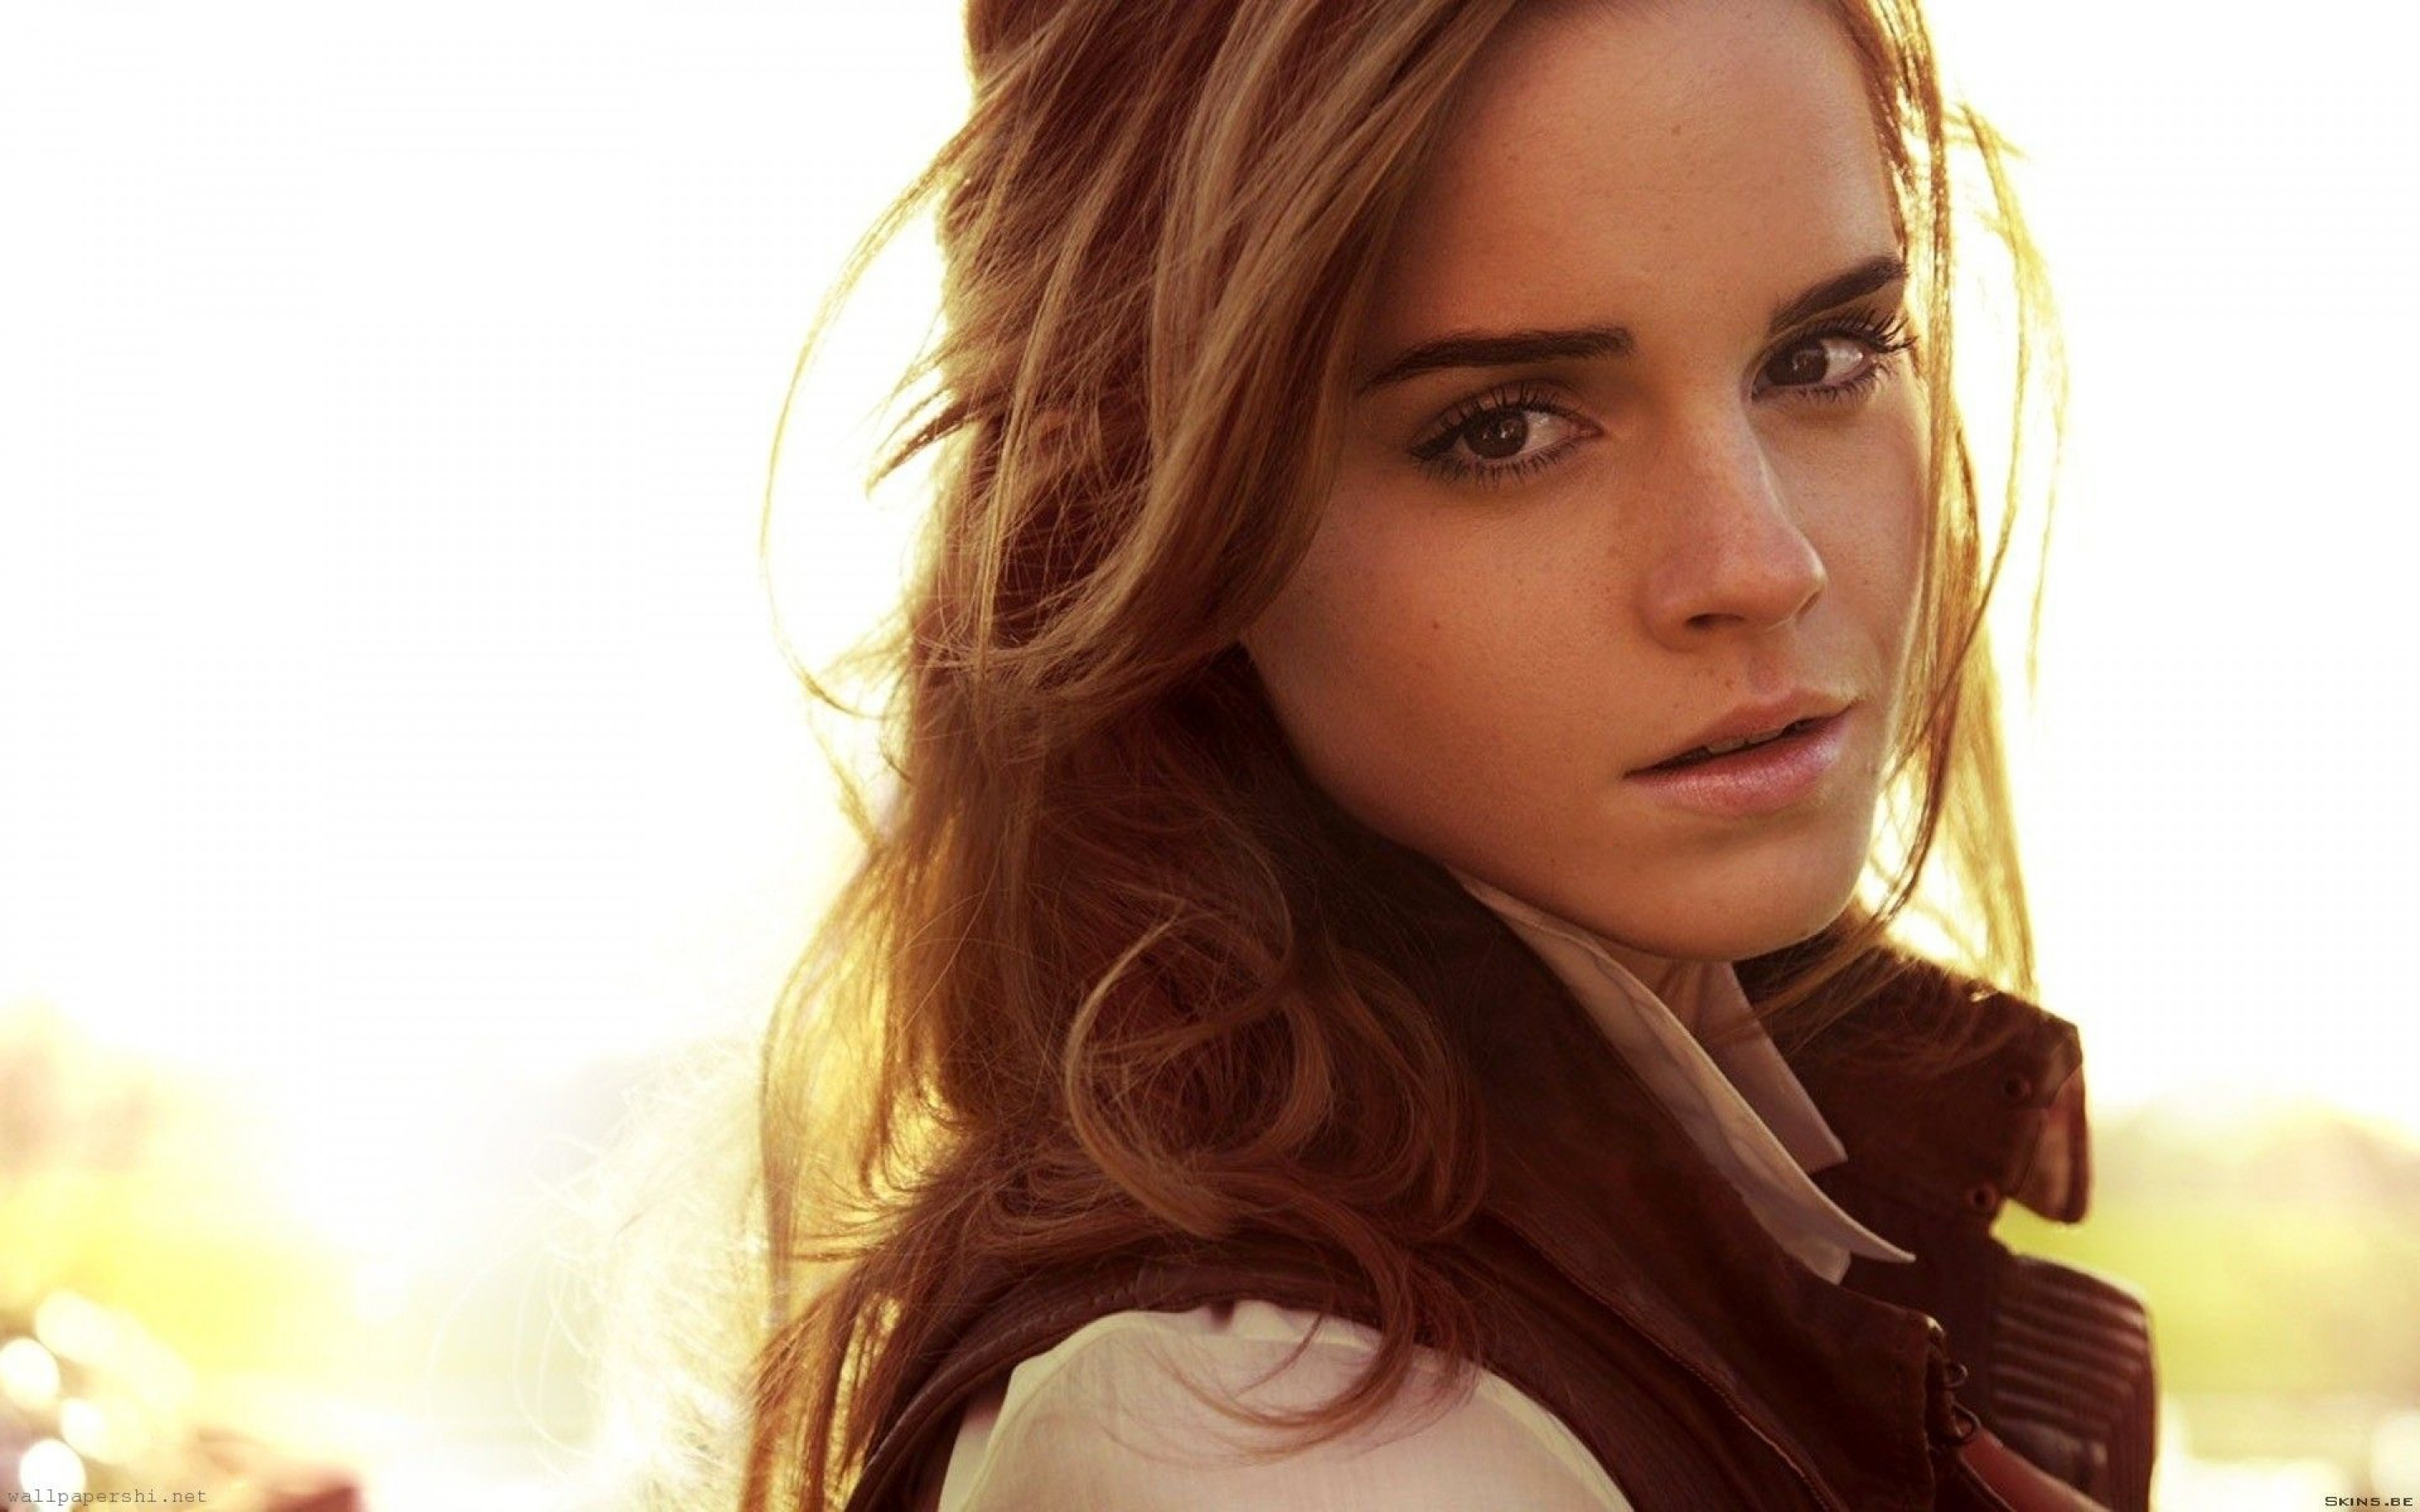 2880x1800 Emma Watson wallpaper high definition